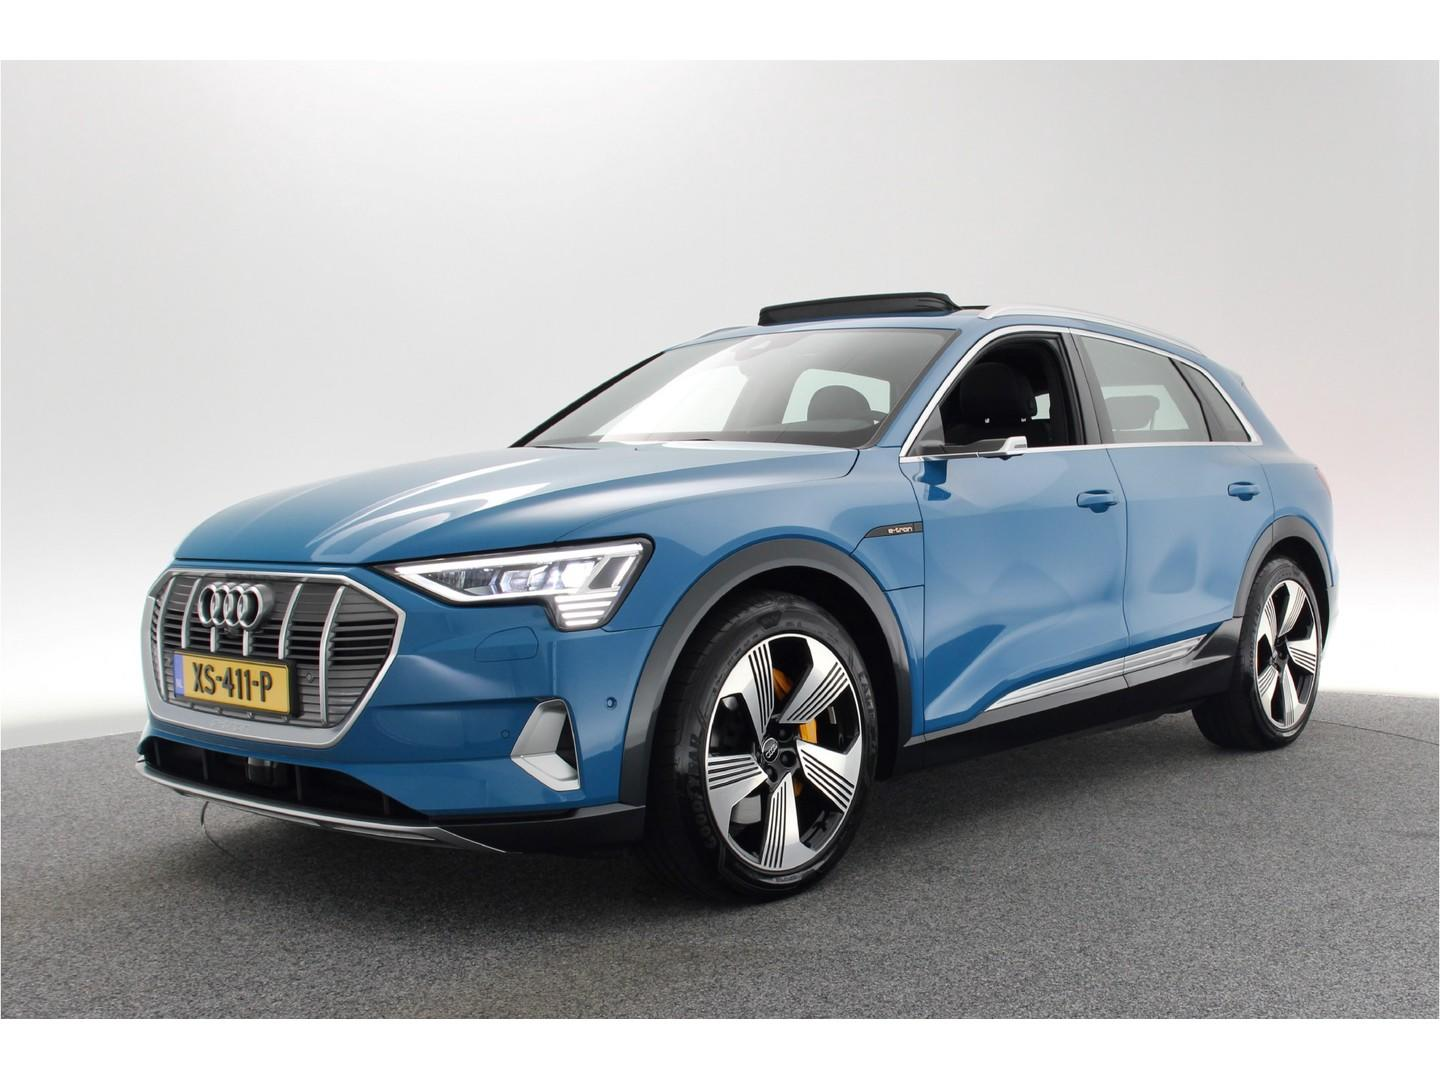 Audi E-tron E-tron 55 quattro advanced exterieur launch edition € 81.675 incl. btw / panoramadak / mmi navigatie plus / luchtvering / led / 21'' / leder